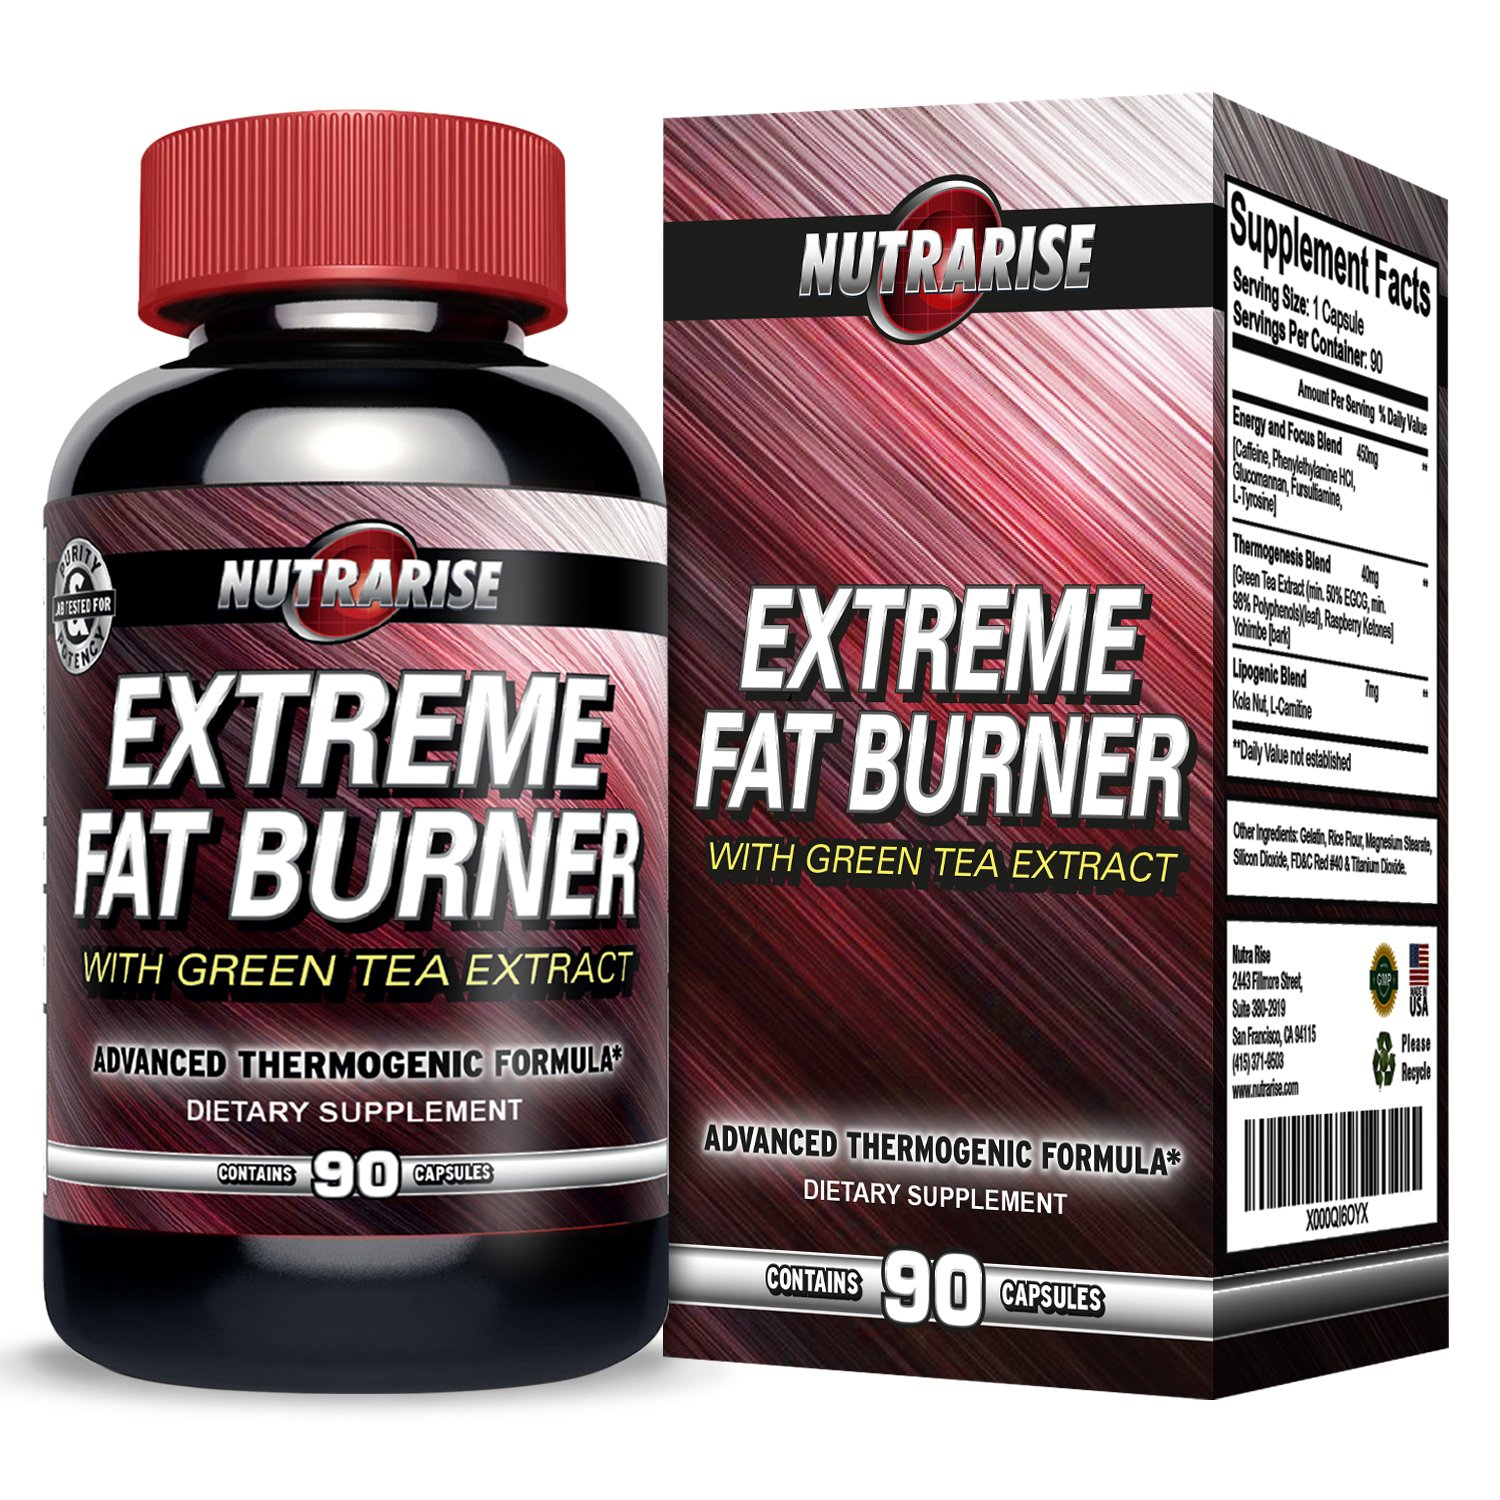 Burn Extreme Lipo SLIMMING DIET PILLS 30-Capsules,Fat Burner,Lose 20lbs In Weeks